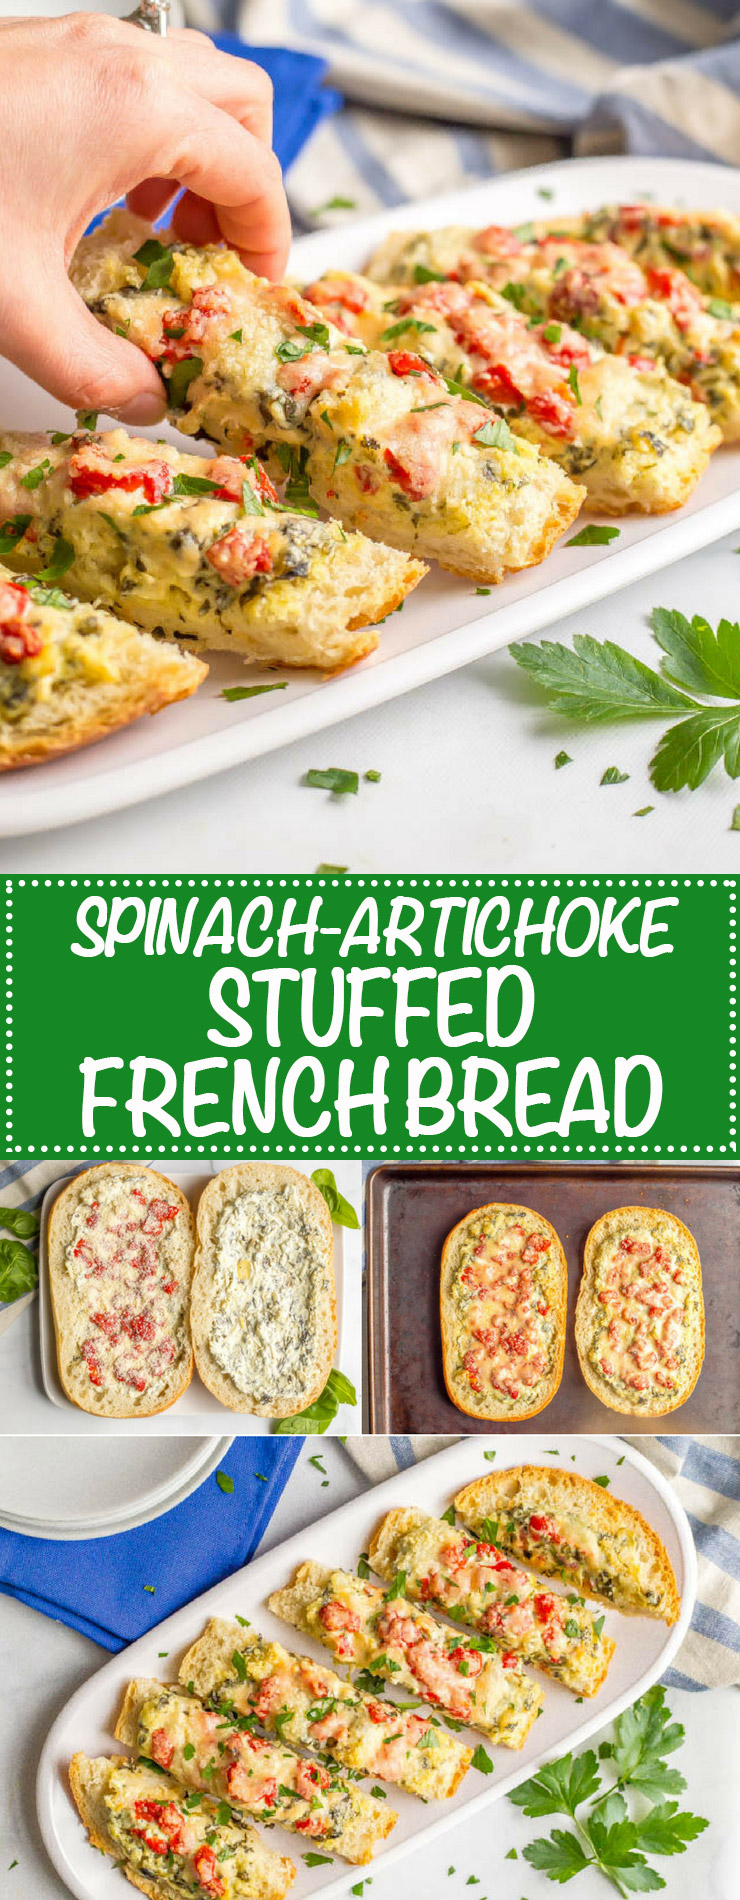 Spinach artichoke stuffed French bread is a super easy 2-ingredient recipe that's always a crowd pleaser and perfect for game day! #easyappetizer #spinachartichoke #gamedayeats #stuffedbread | www.familyfoodonthetable.com